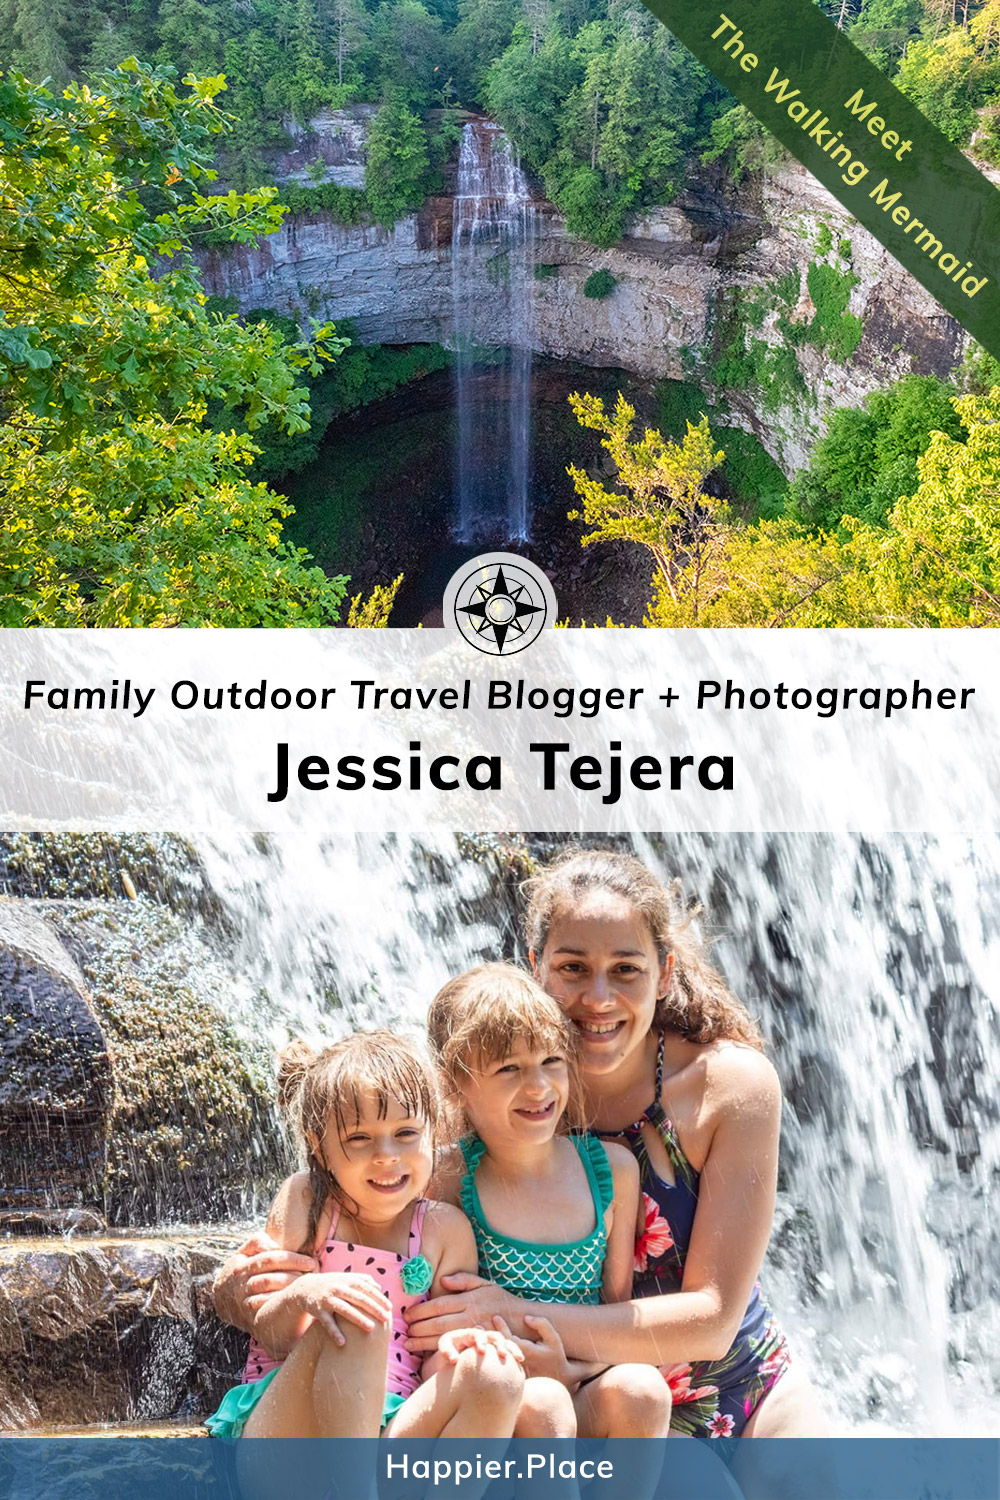 Jessica Tejera, The Walking Mermaid, Family Outdoor Travel Blogger and Photographer hiking through fall colors.